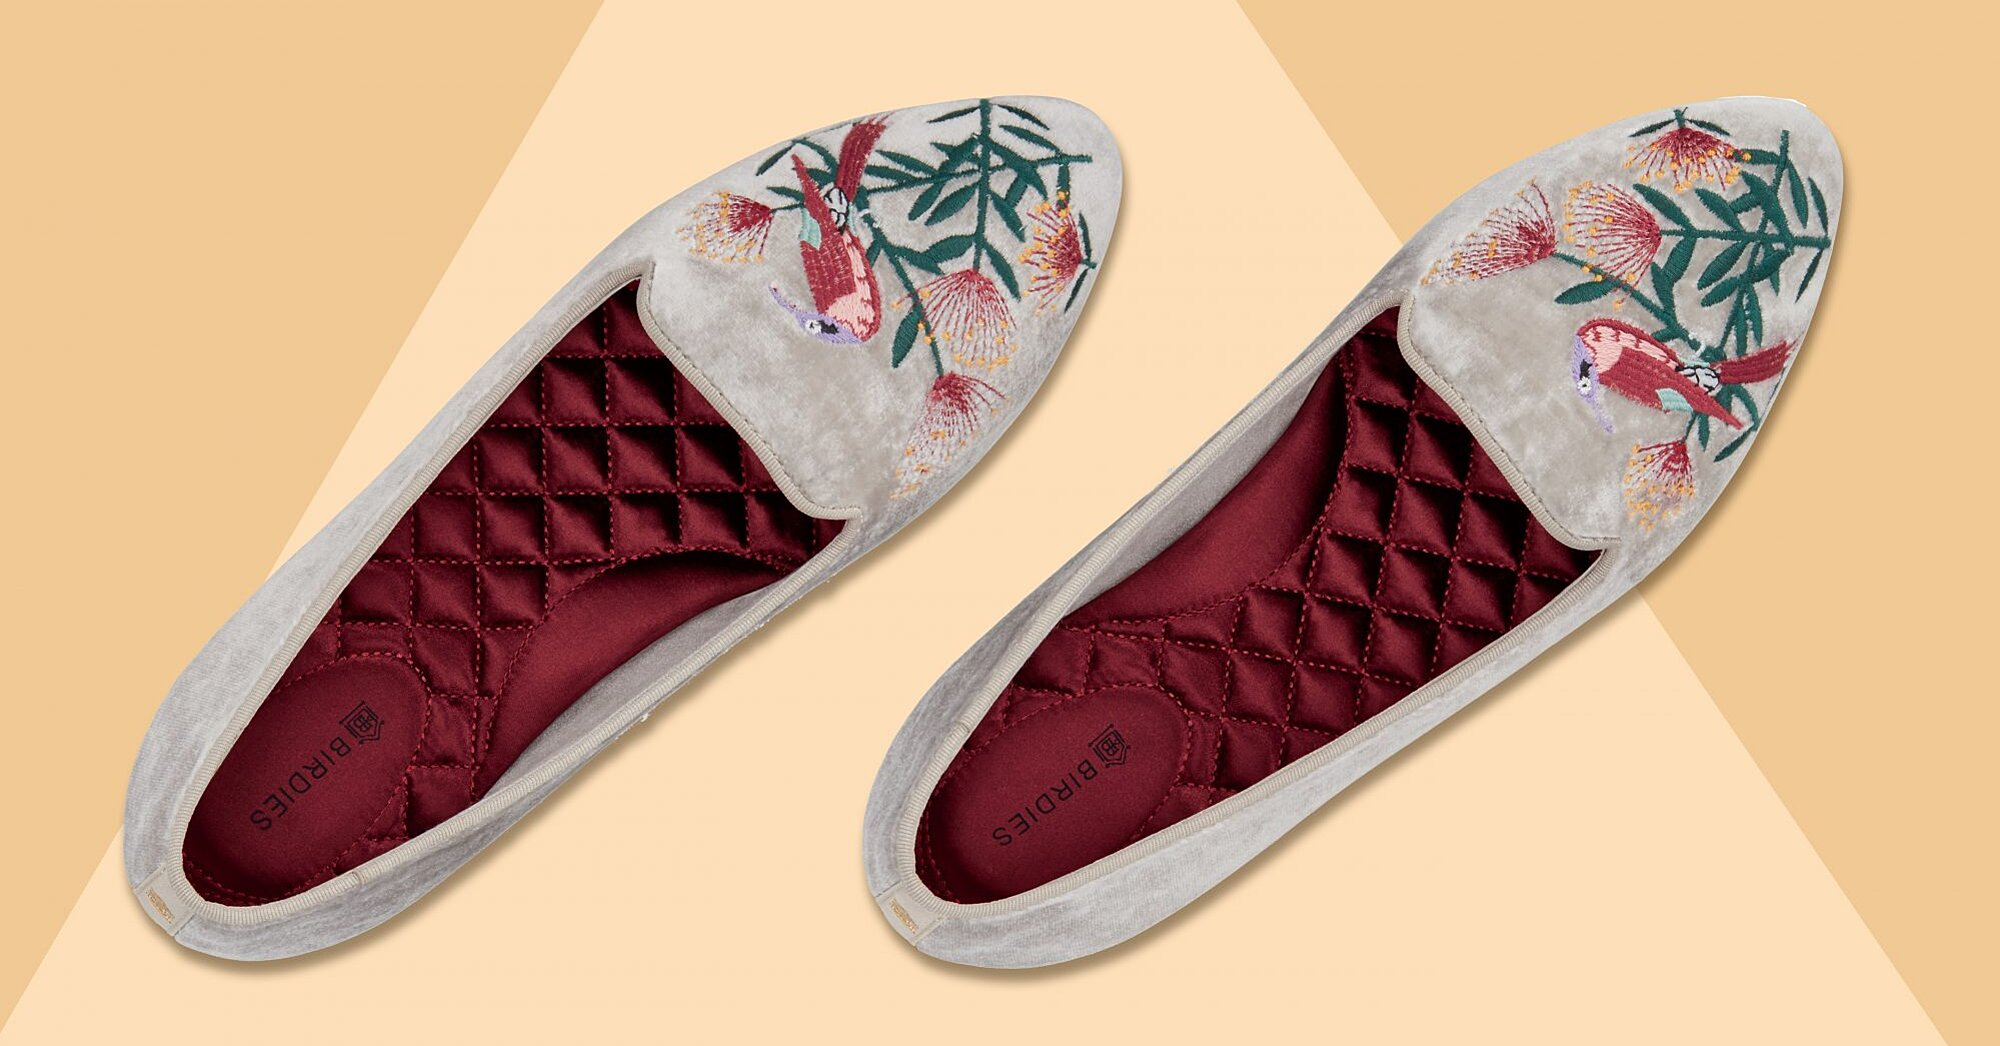 The Flats Famous for Being as Comfortable as Slippers Just Got Their Most Stylish Update Yet